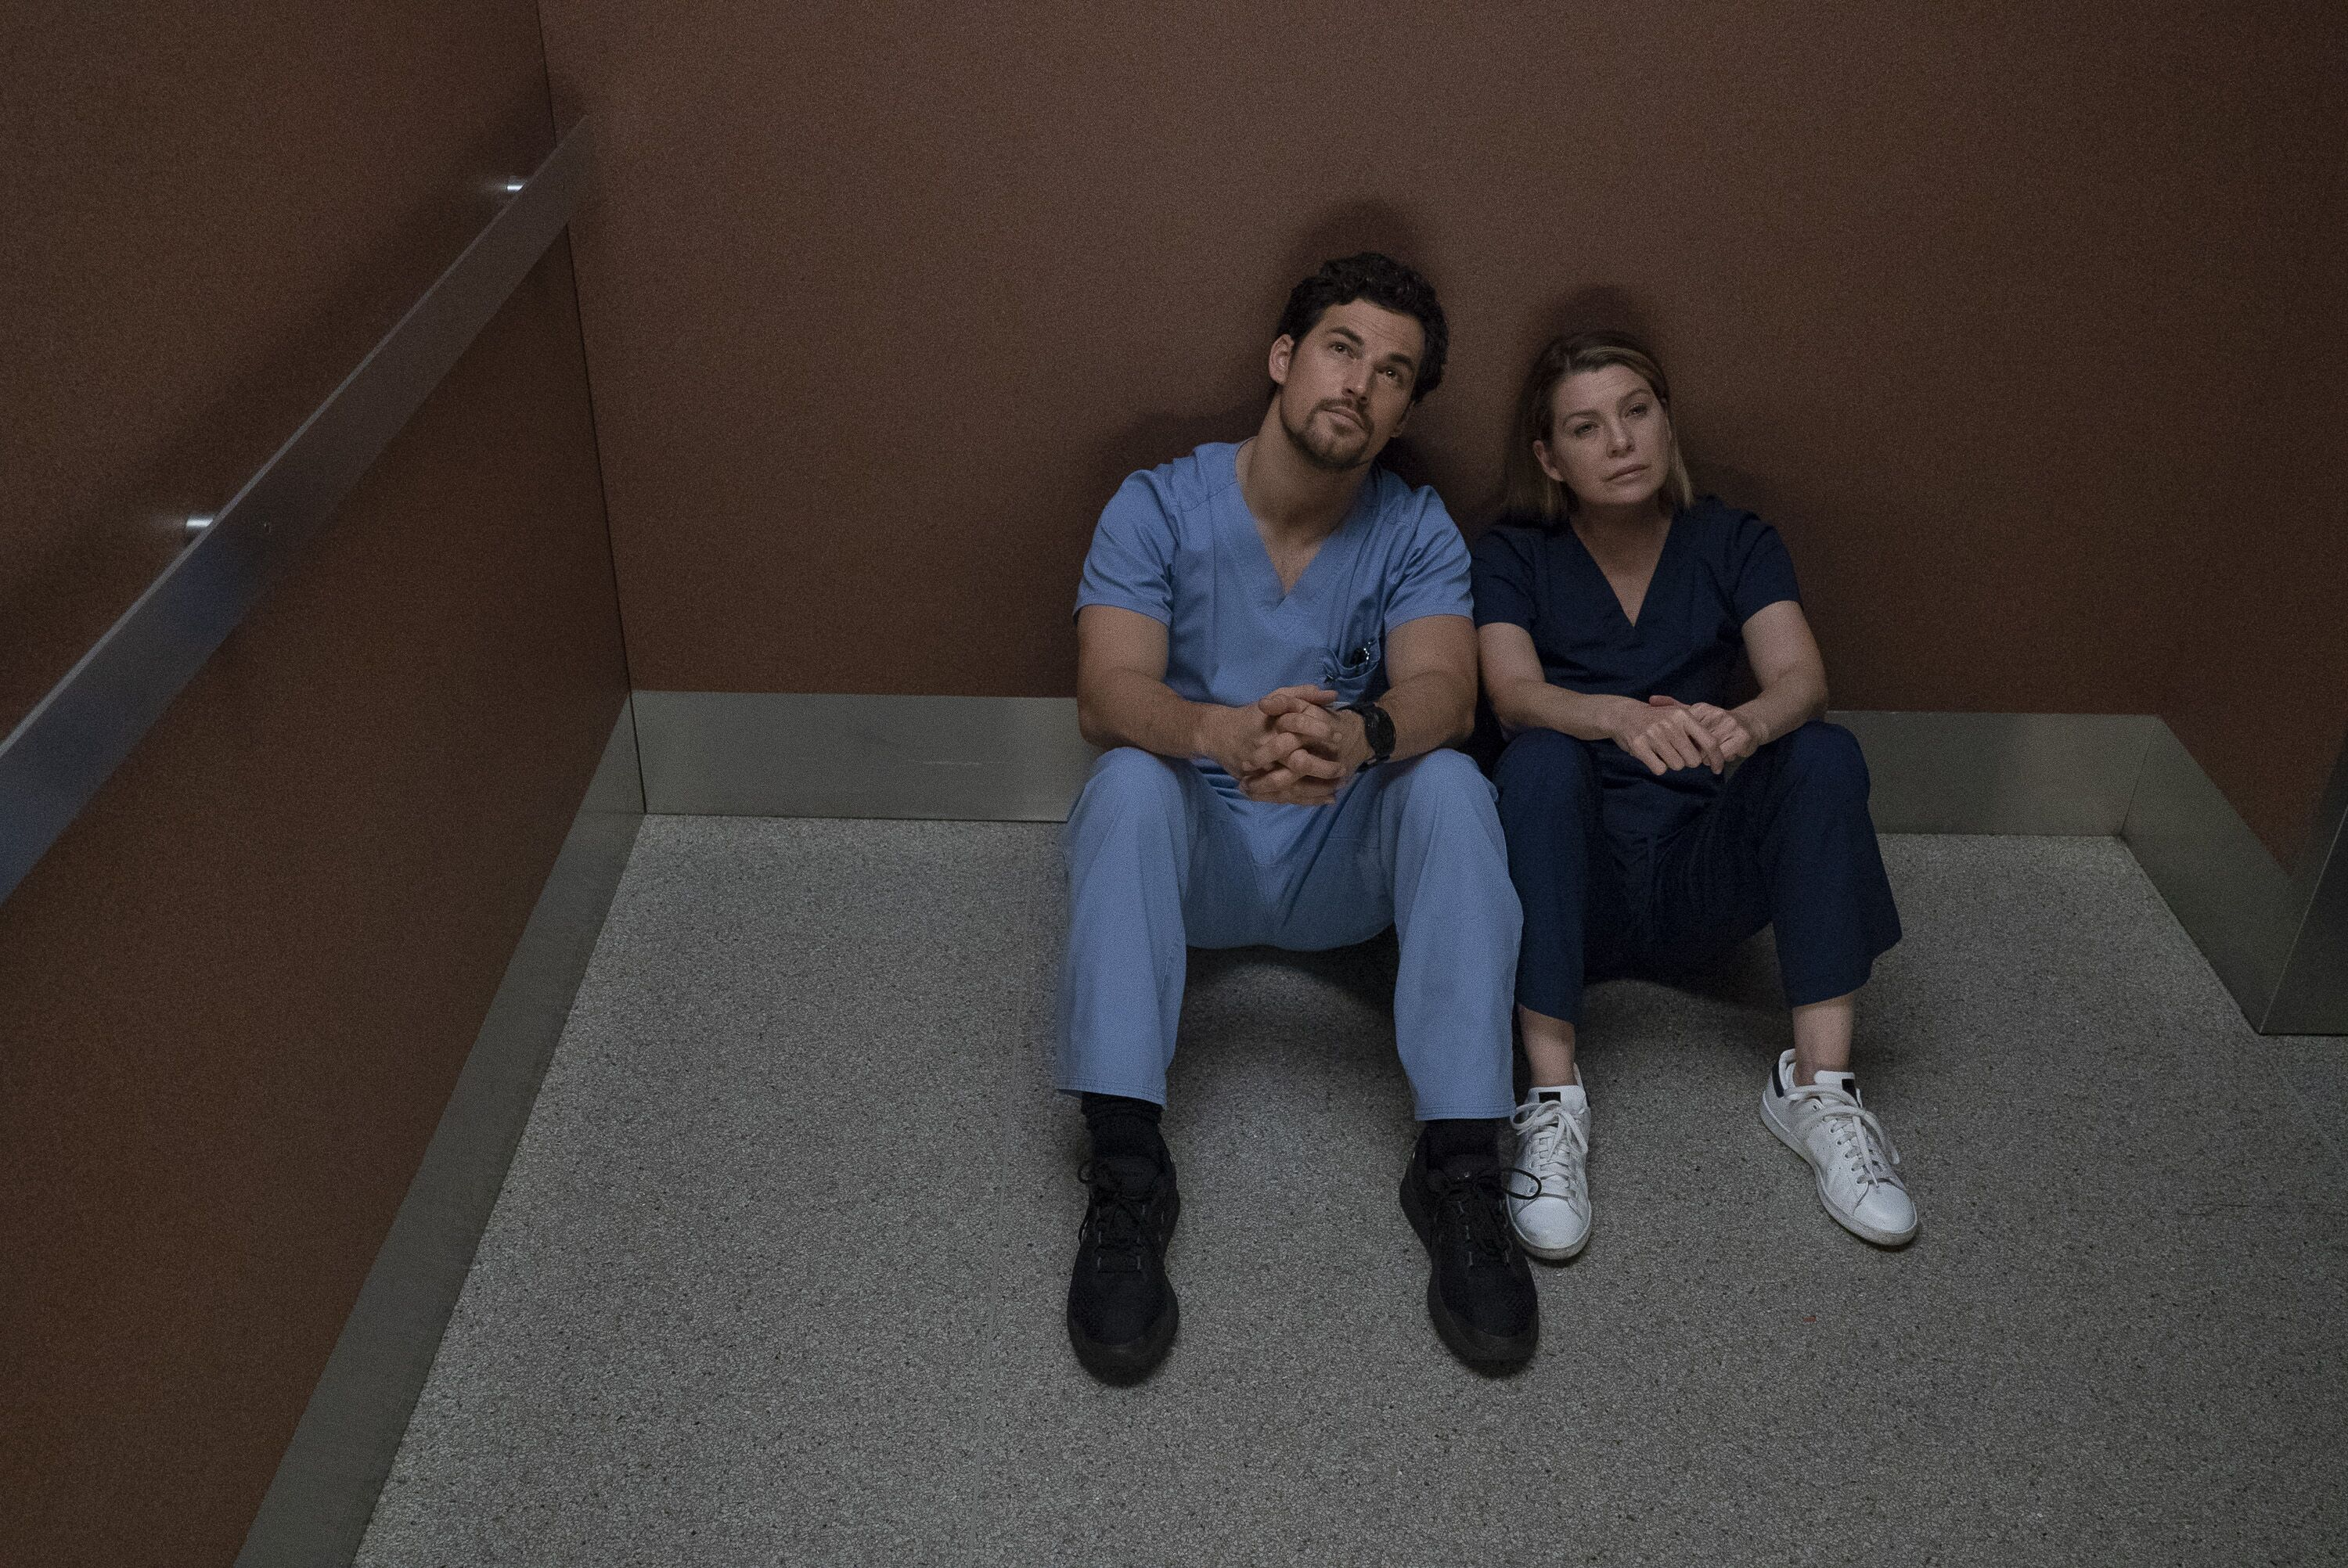 Grey's Anatomy season 16 episode 9 preview: A reunion, a baby, and a tragedy